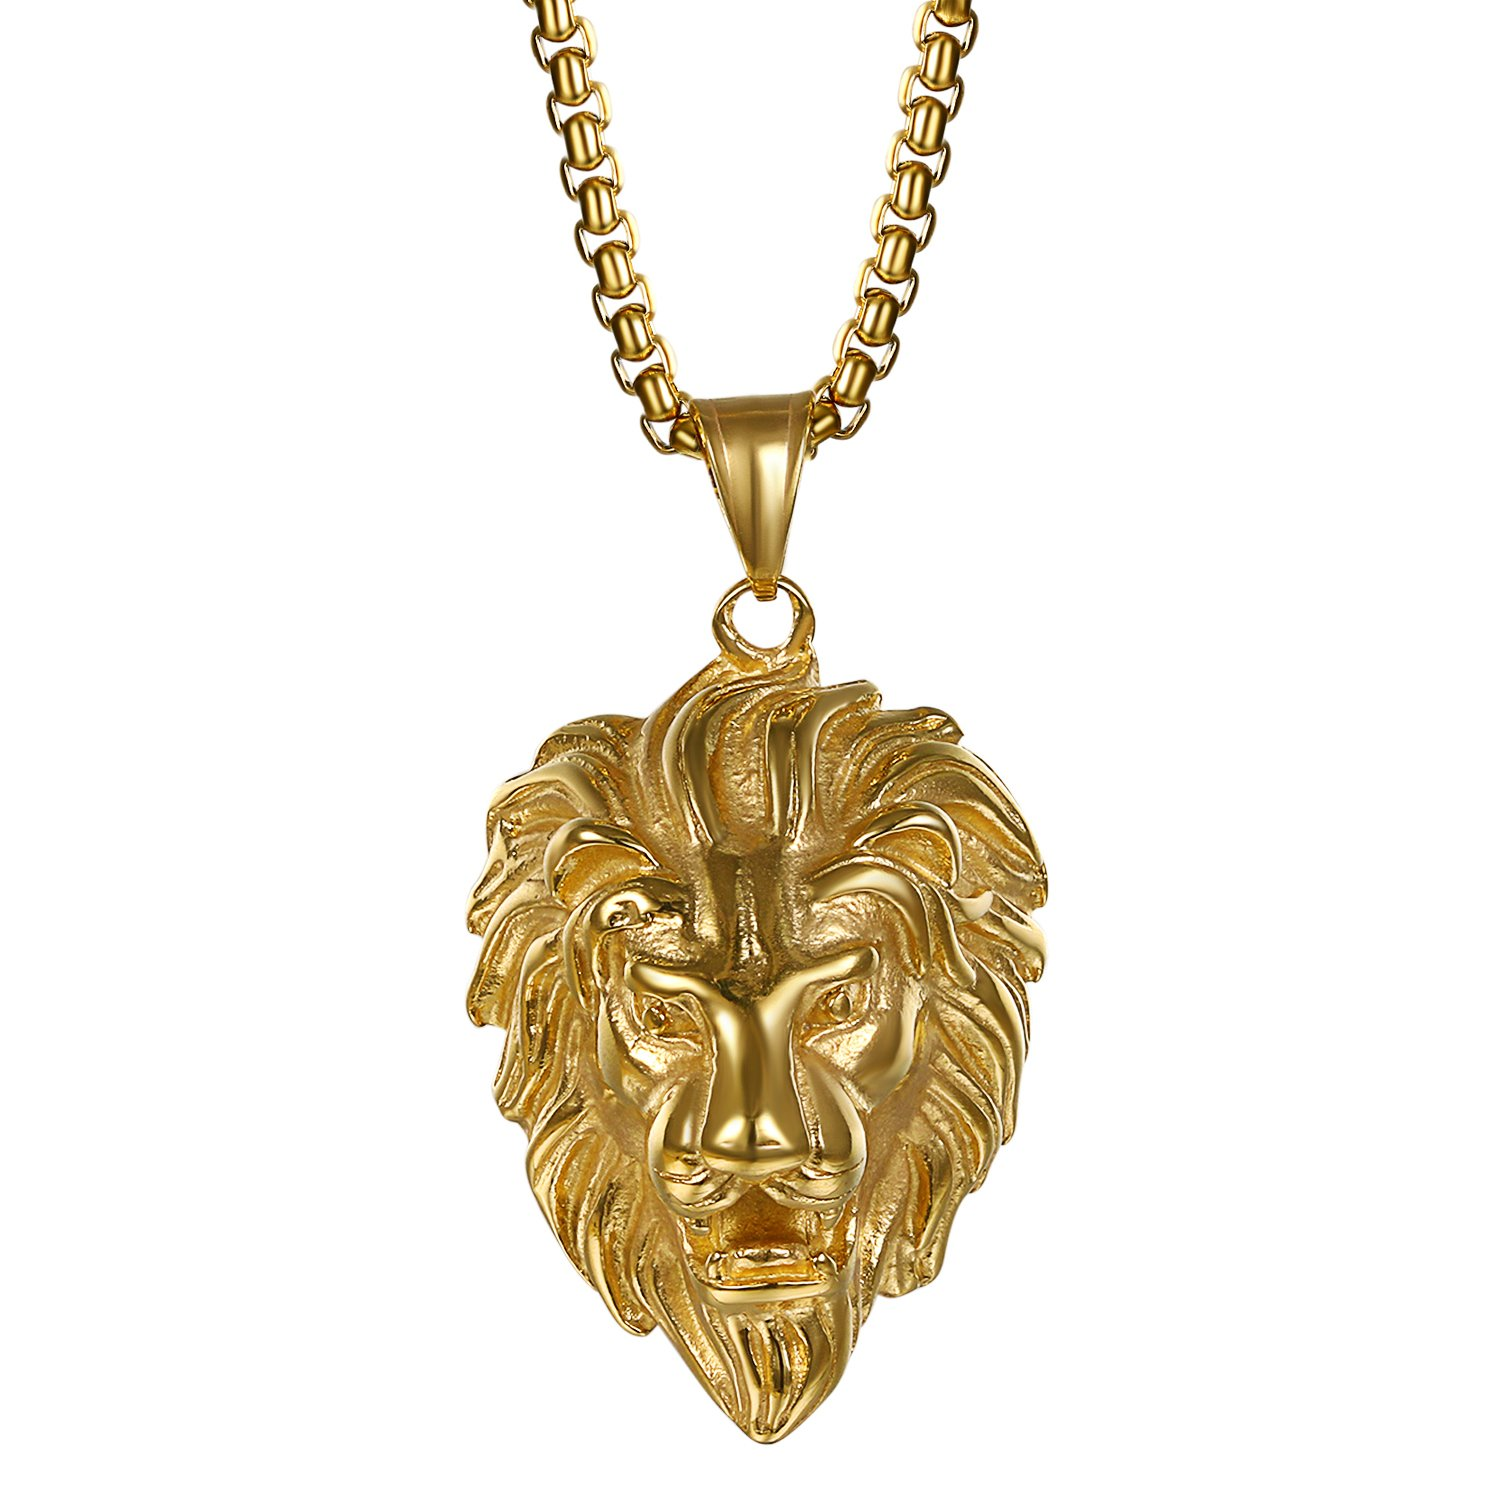 Stainless Steel Lion Head Necklace,Cupimatch Men's Lion Pendant Necklace, 22 Biker Link Chain Gold Tone CU-MI-25